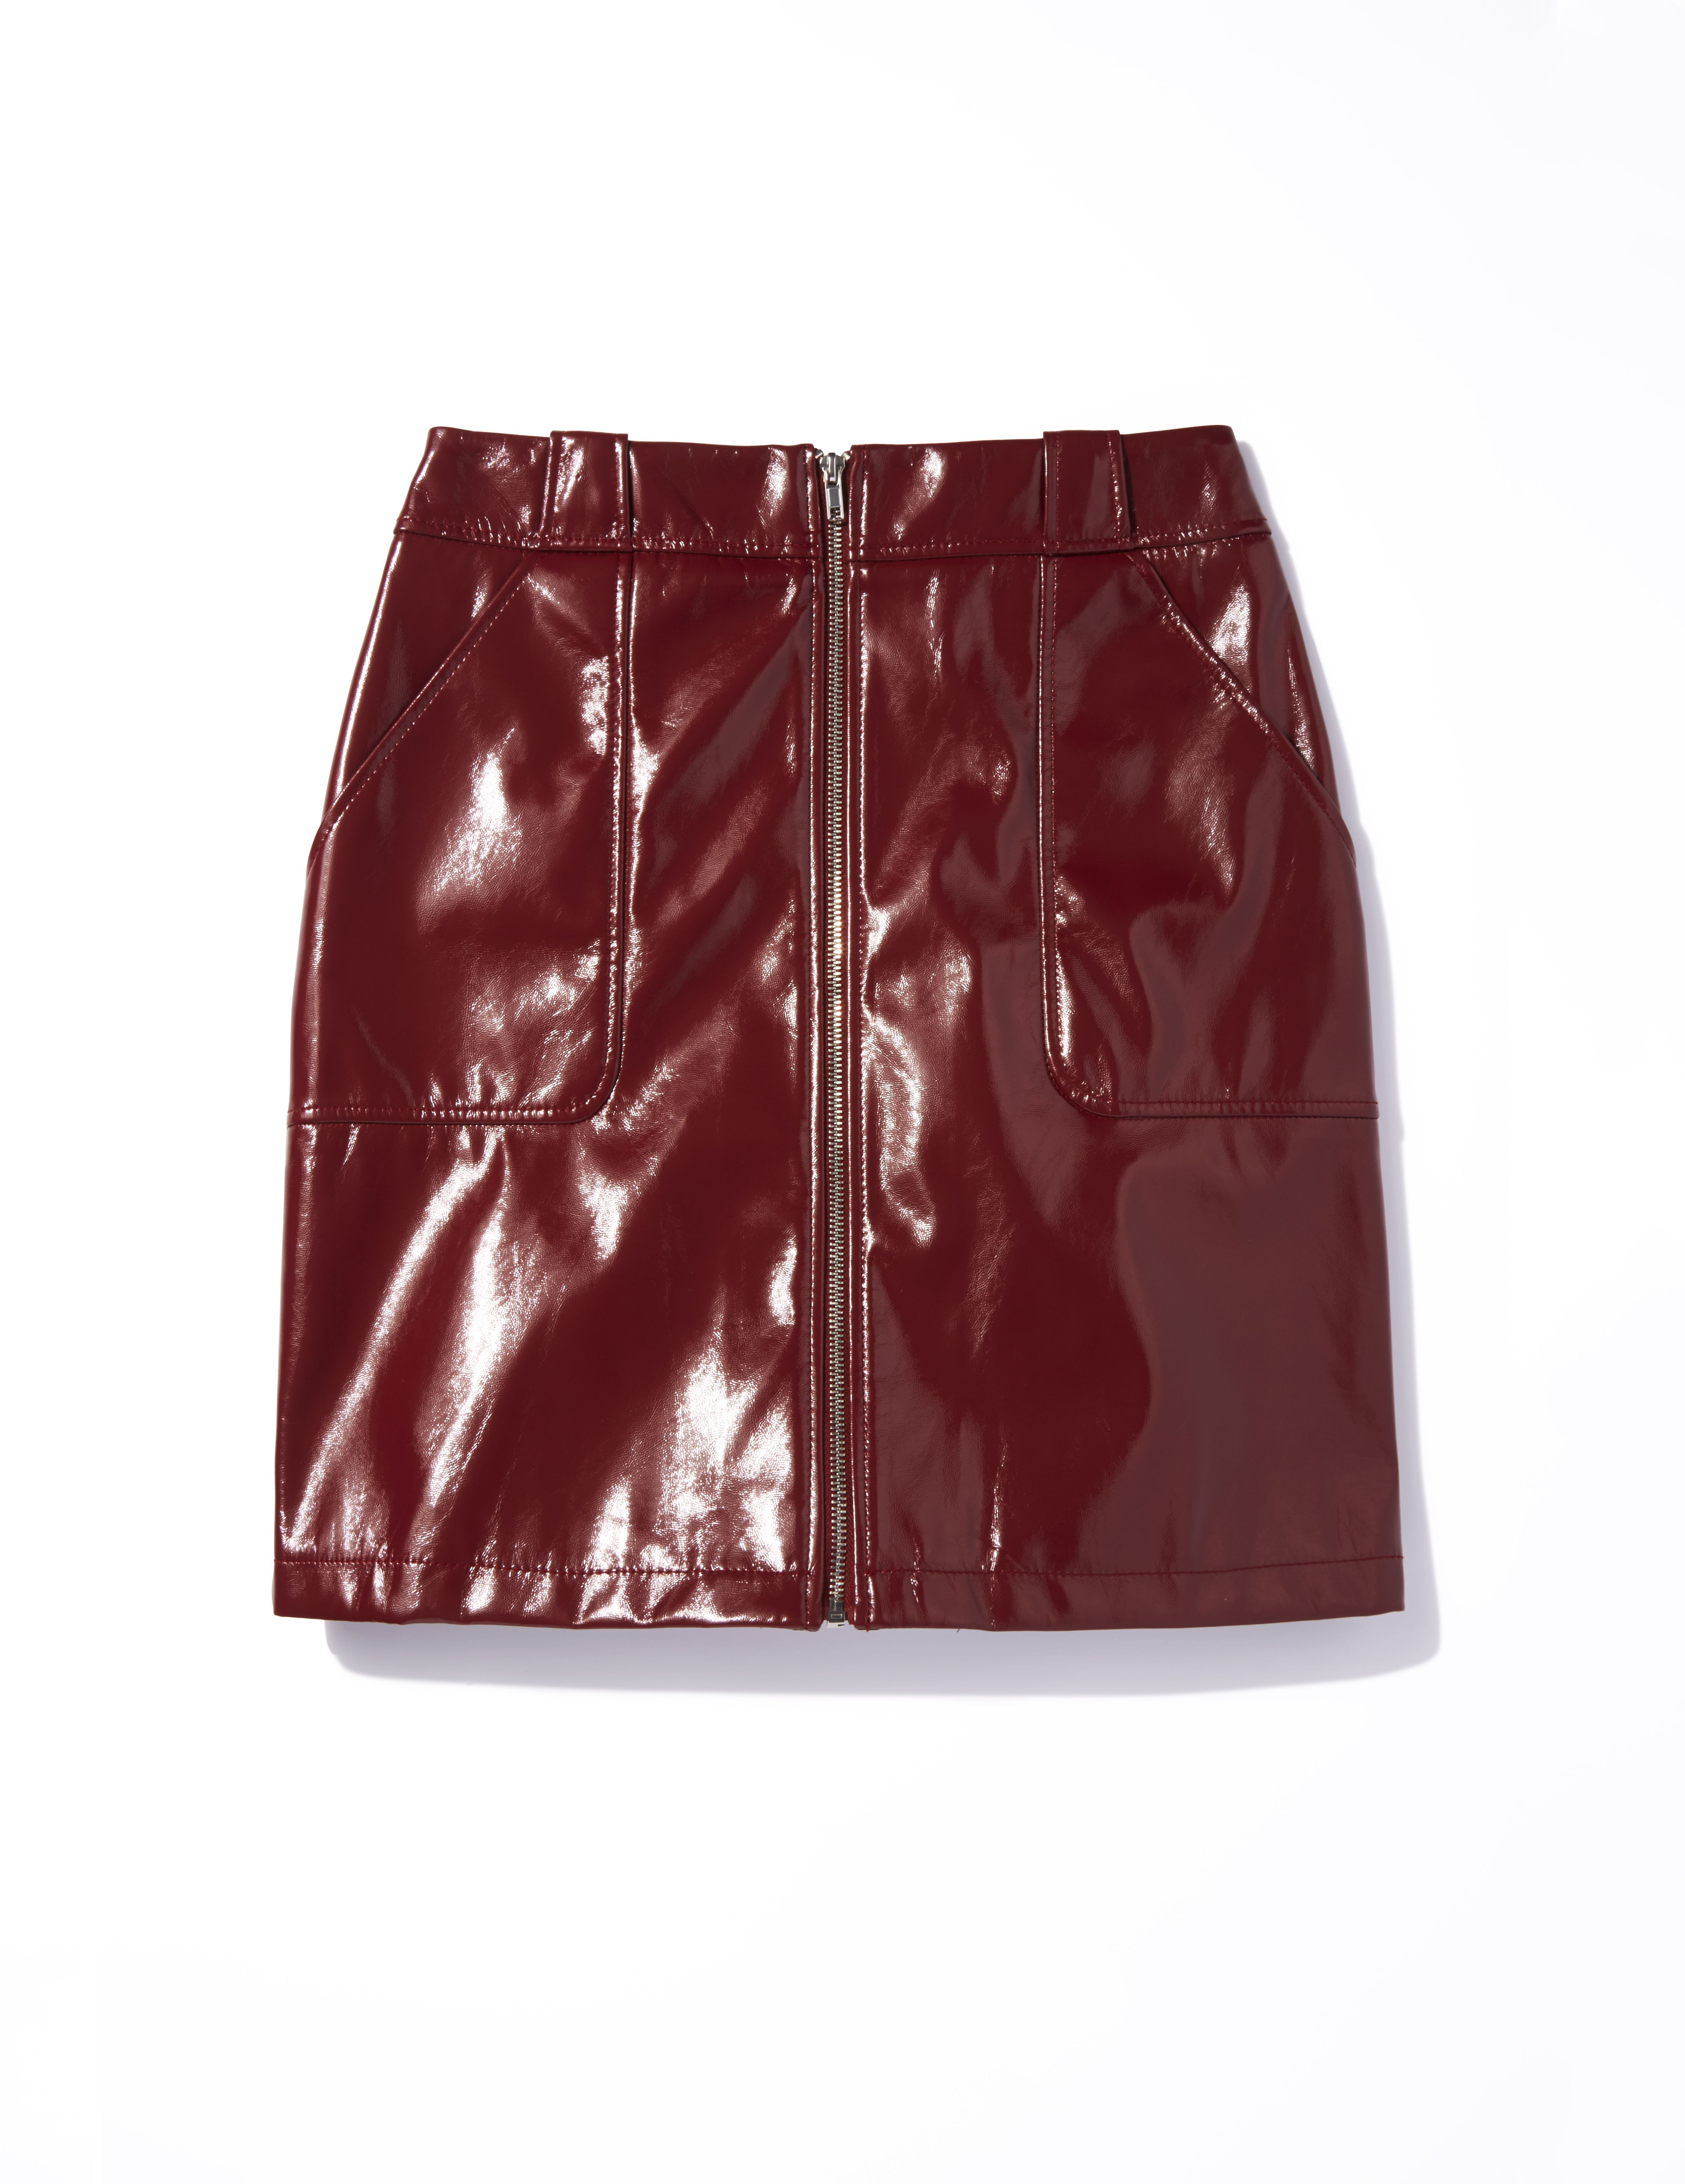 0f230633ba96 Wear Dorothy Perkins  rich red PU light-reflecting skirt with a tucked-in  T-shirt